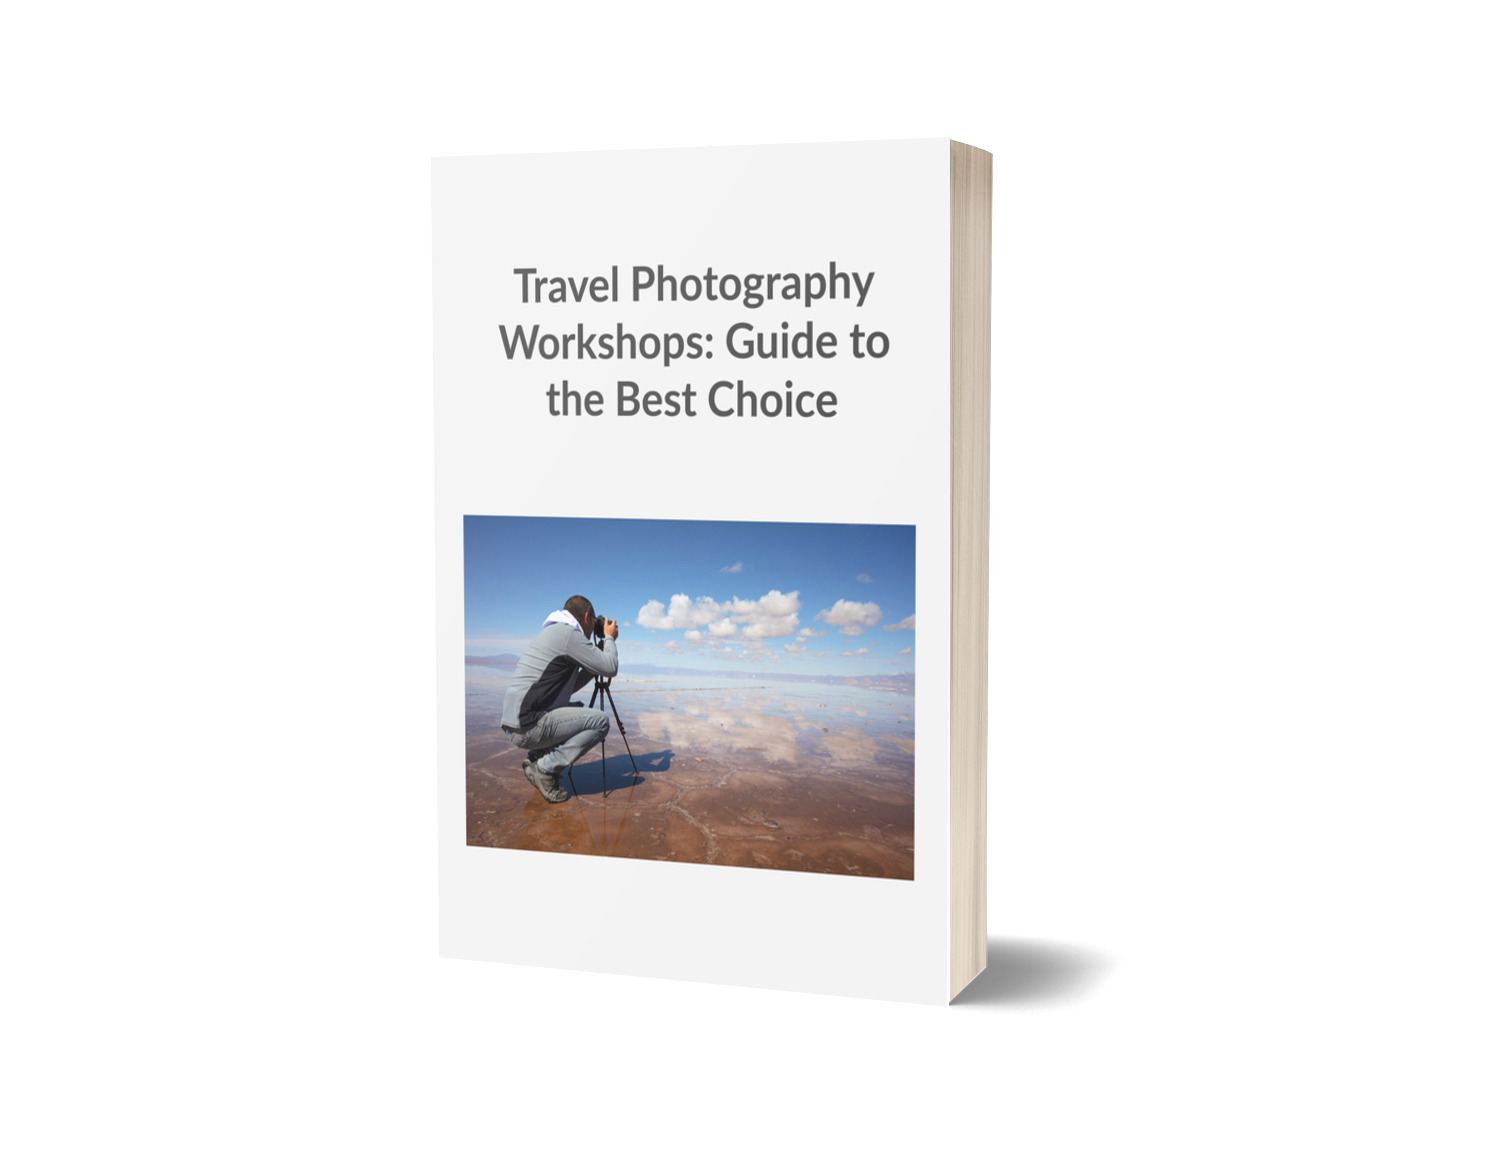 travel photography workshops guide